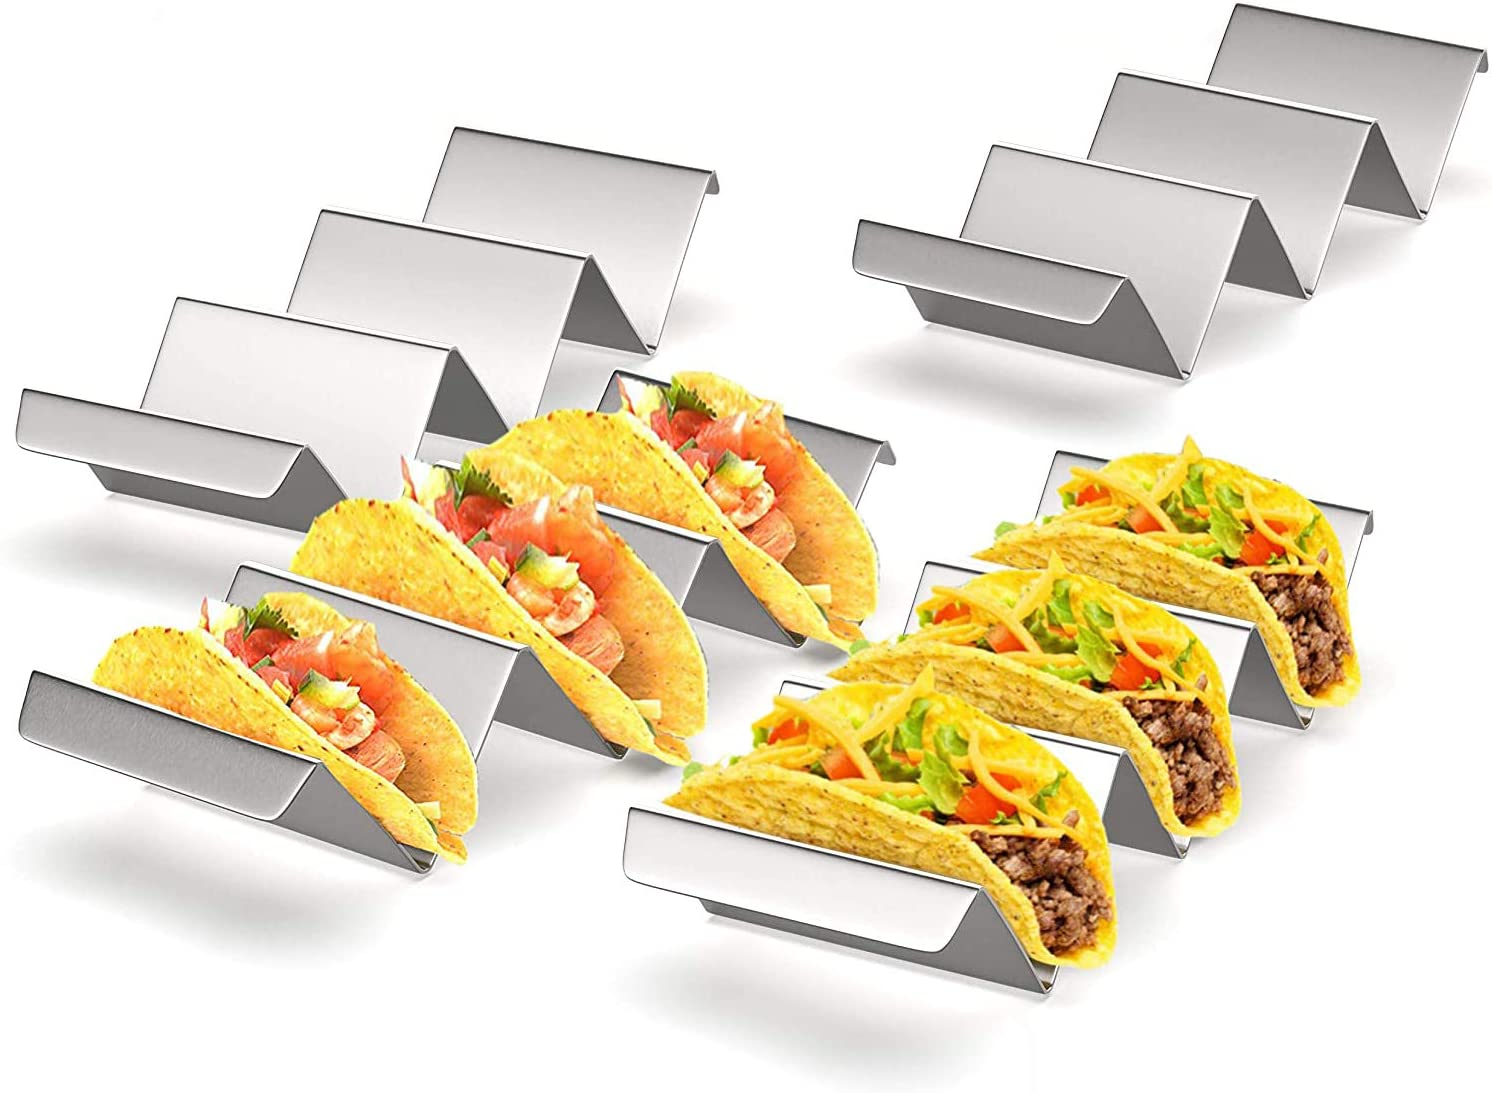 Taco Holders 4 Packs - Stainless Steel Taco Stand, Baking Taco Plates Taco Holder Tray 12 Truck Rack, Taco Accessories with Smooth Handles Edge Safe for Taco Tuesday Party, Dishwasher, Oven, Grill